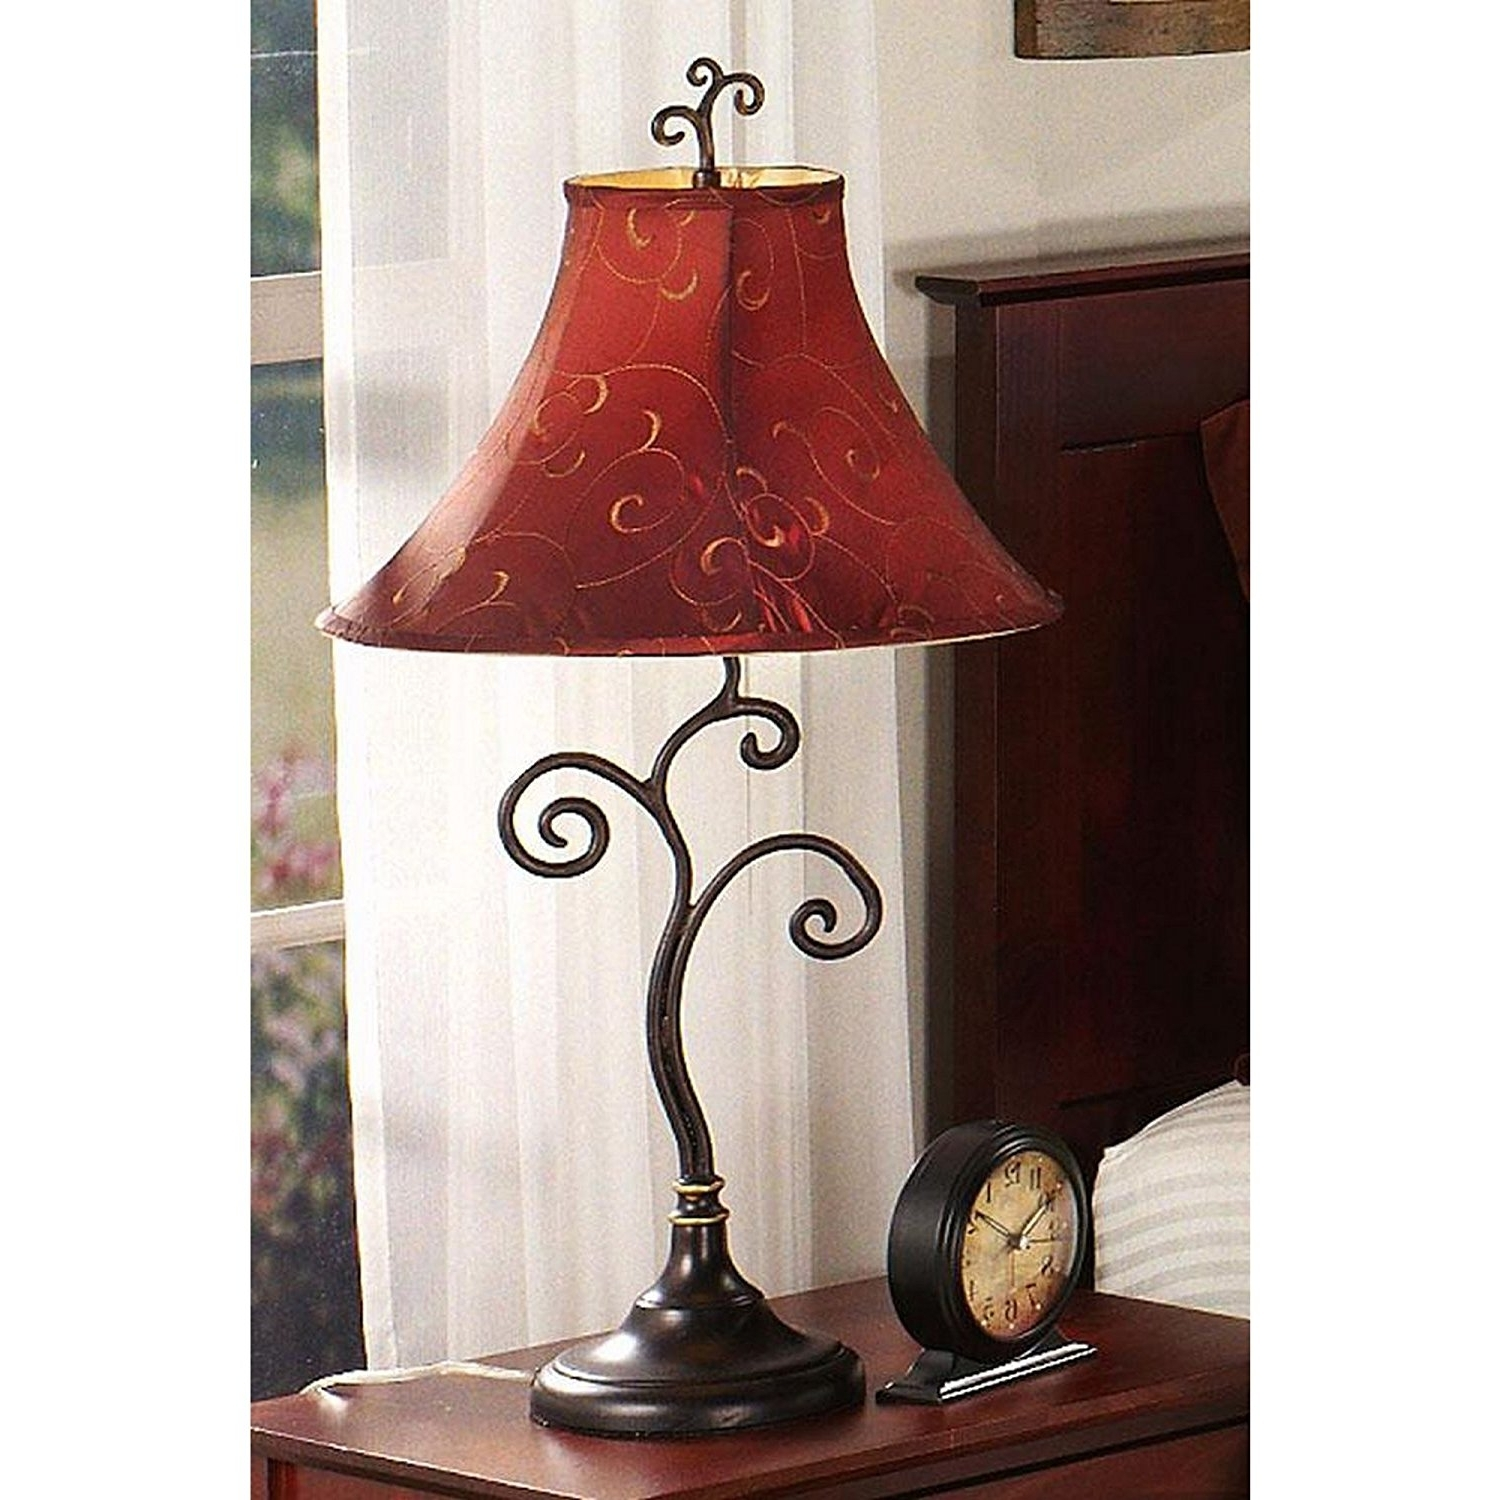 Western Table Lamps For Living Room